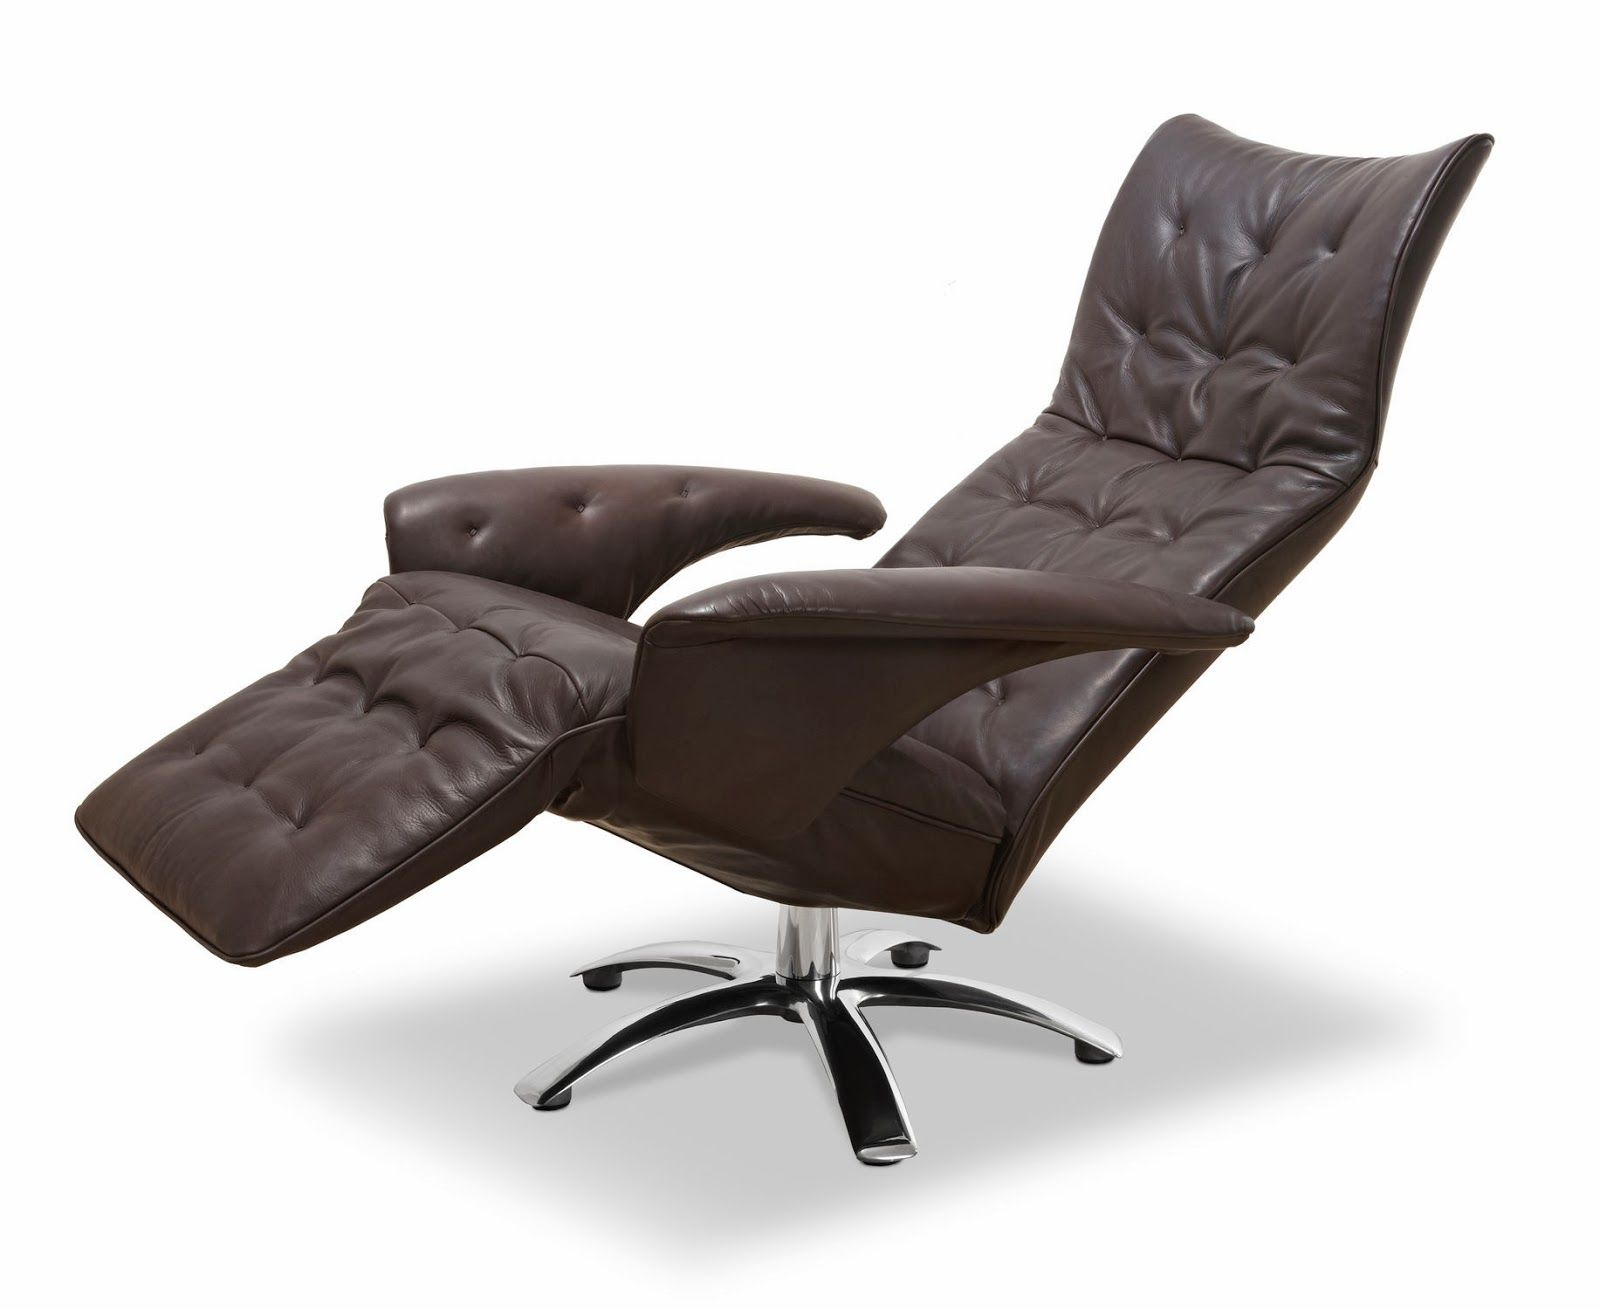 Chair Leather Reclining Swivel Furniture Modern Recliner Chair Design With Brown Leather Modern